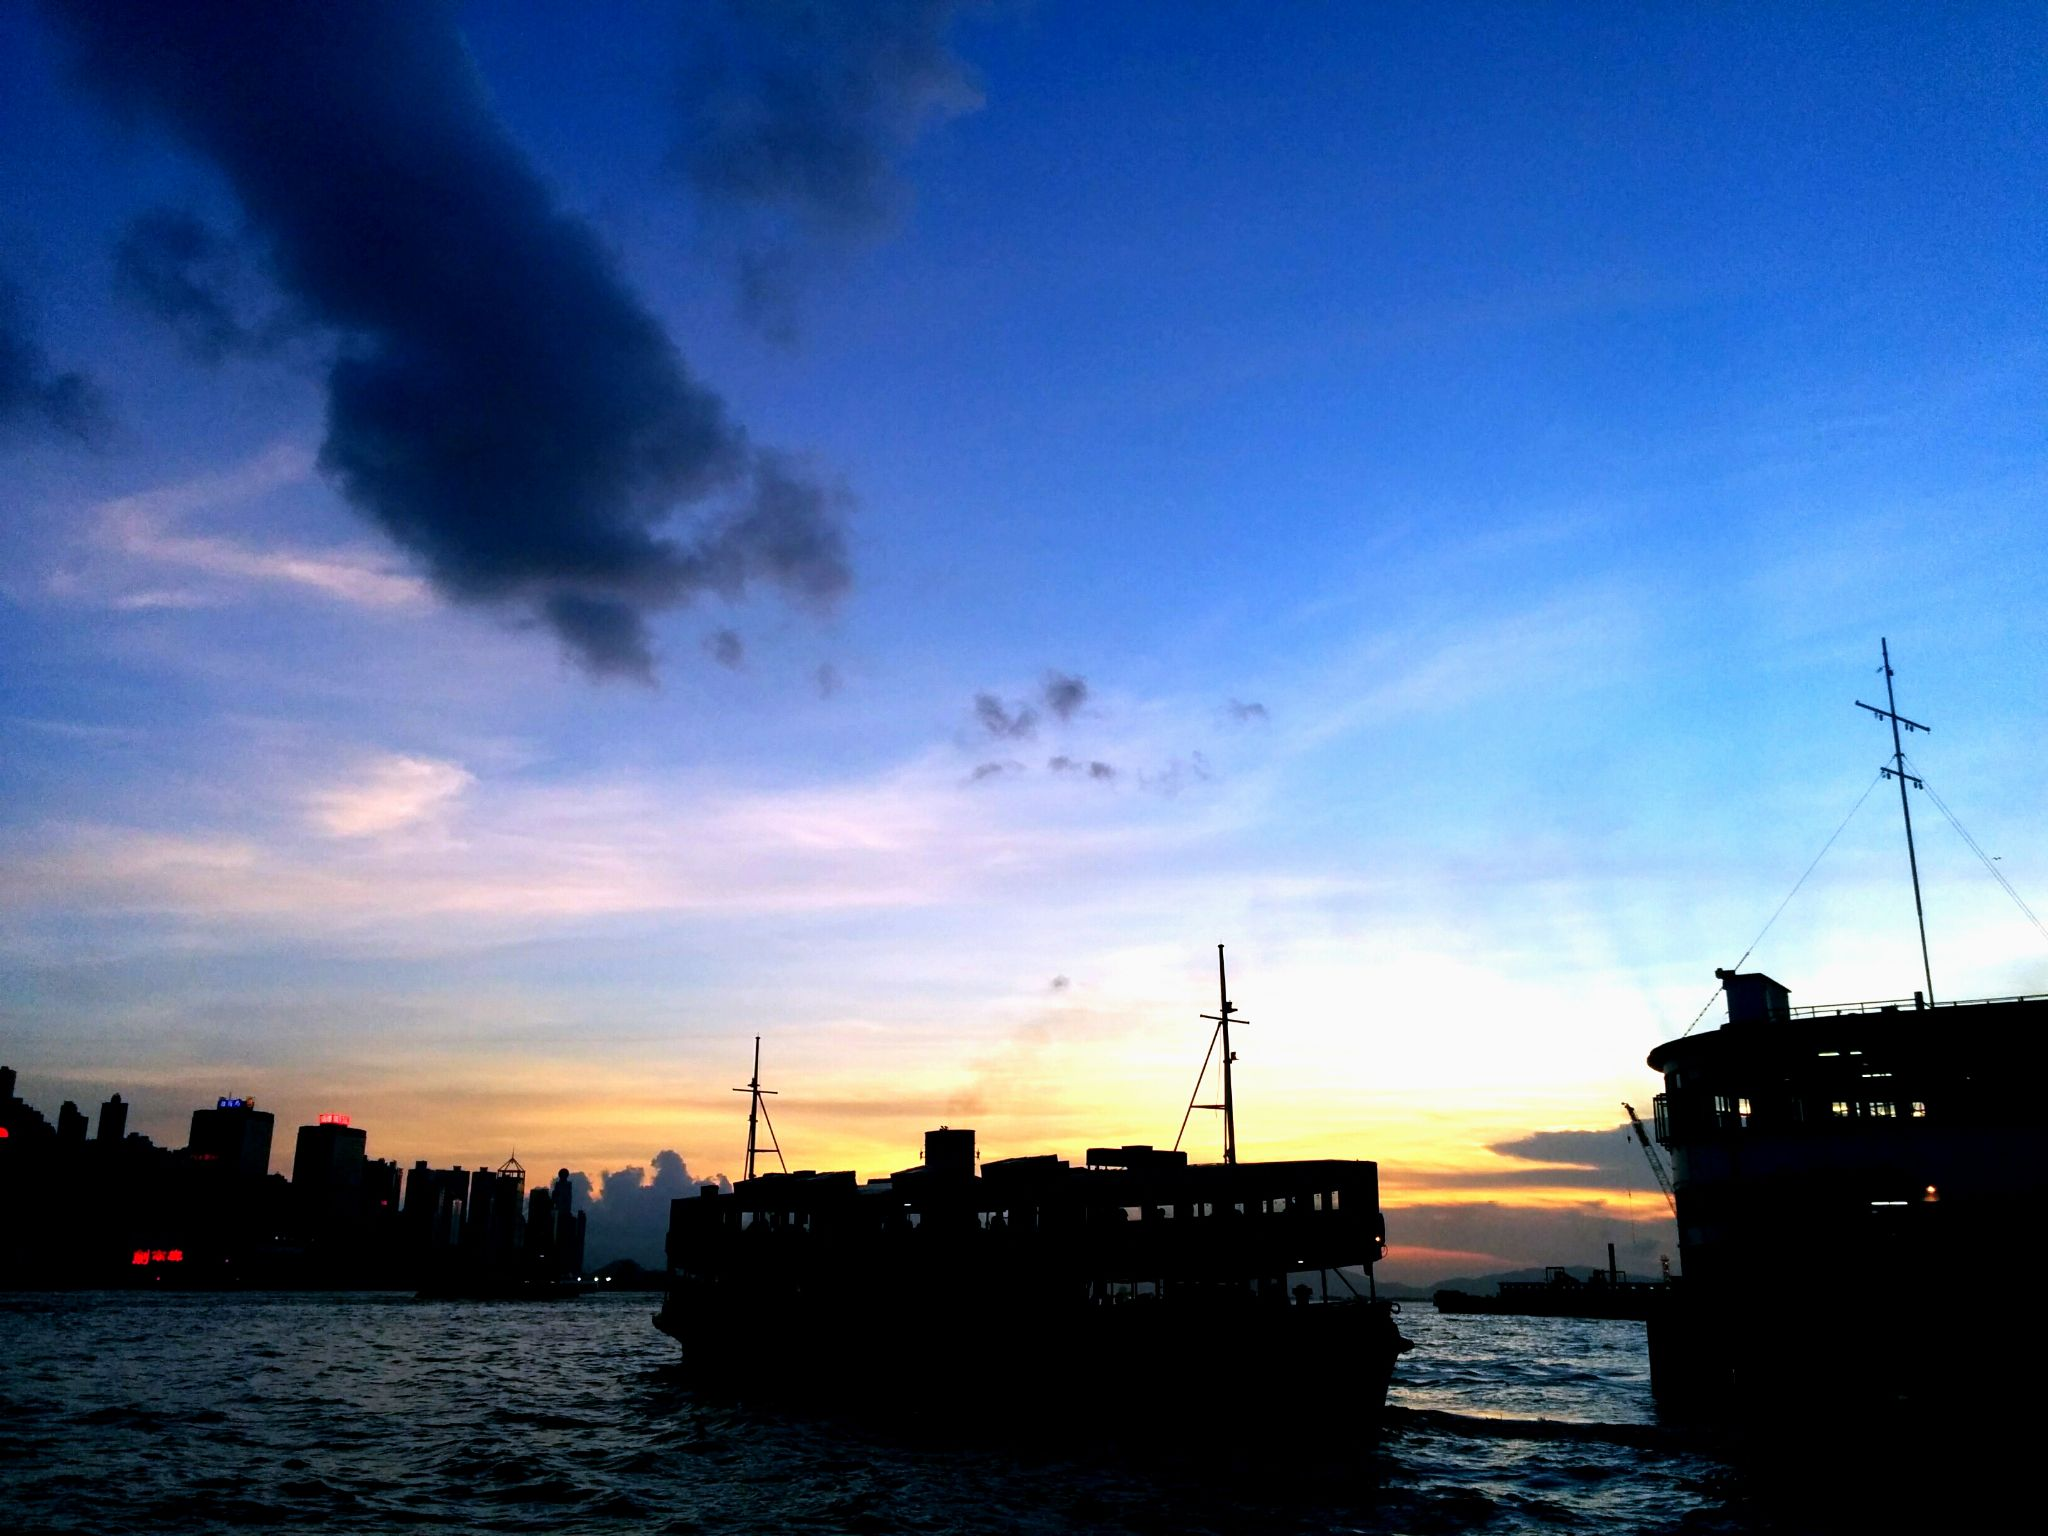 Victoria Harbour Sunset 2 by leocary